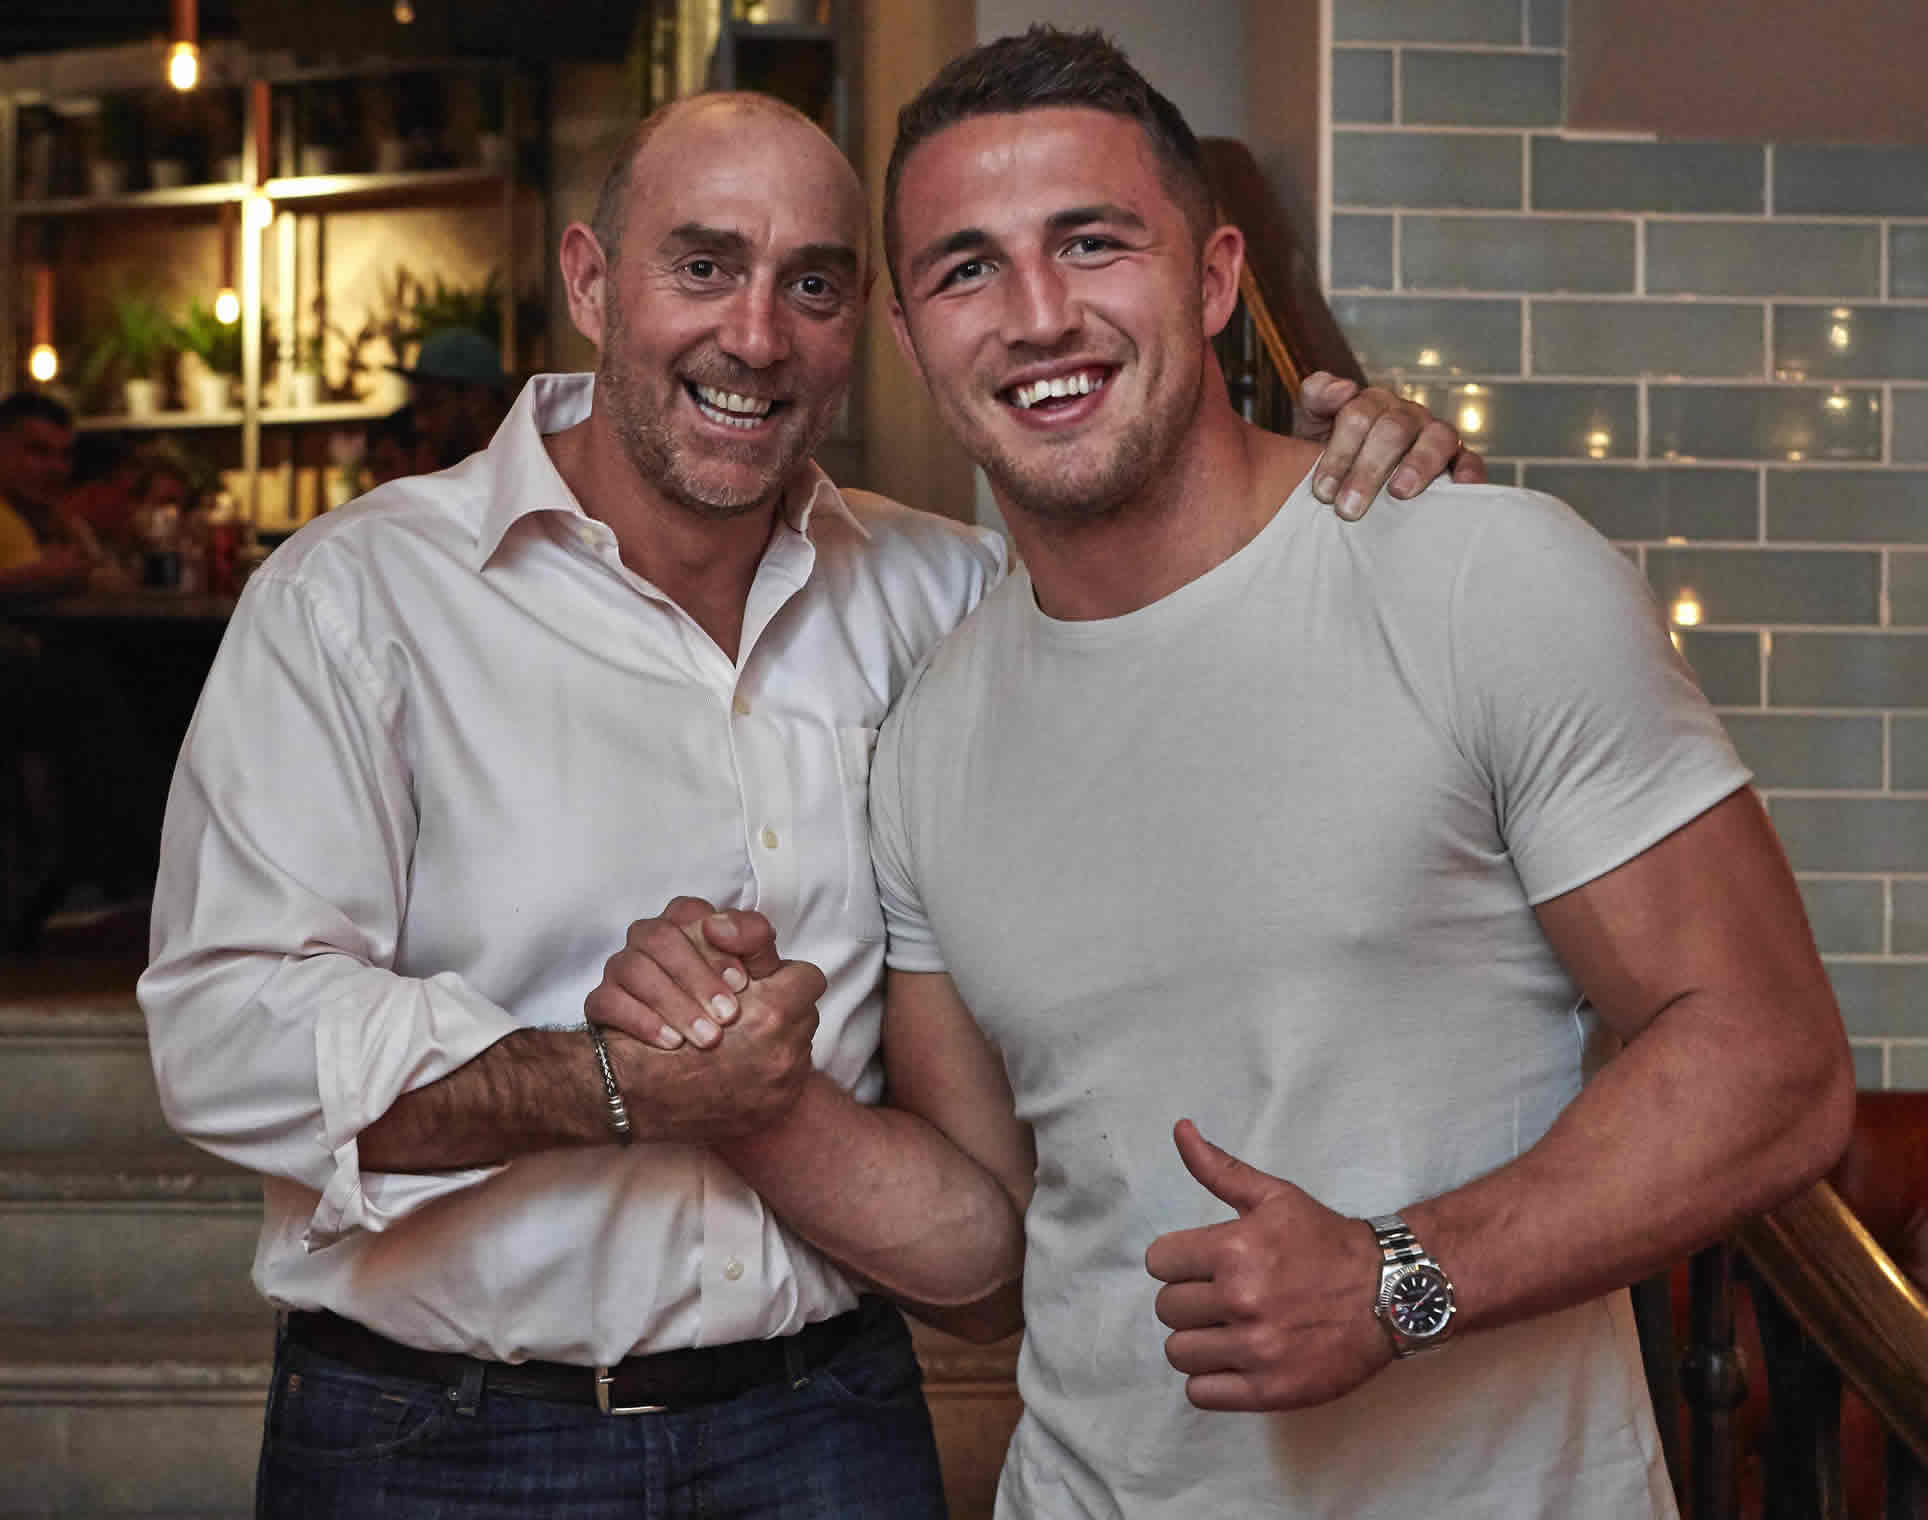 England Rugby Union Squad dine at Banyan ahead of game against Uruguay